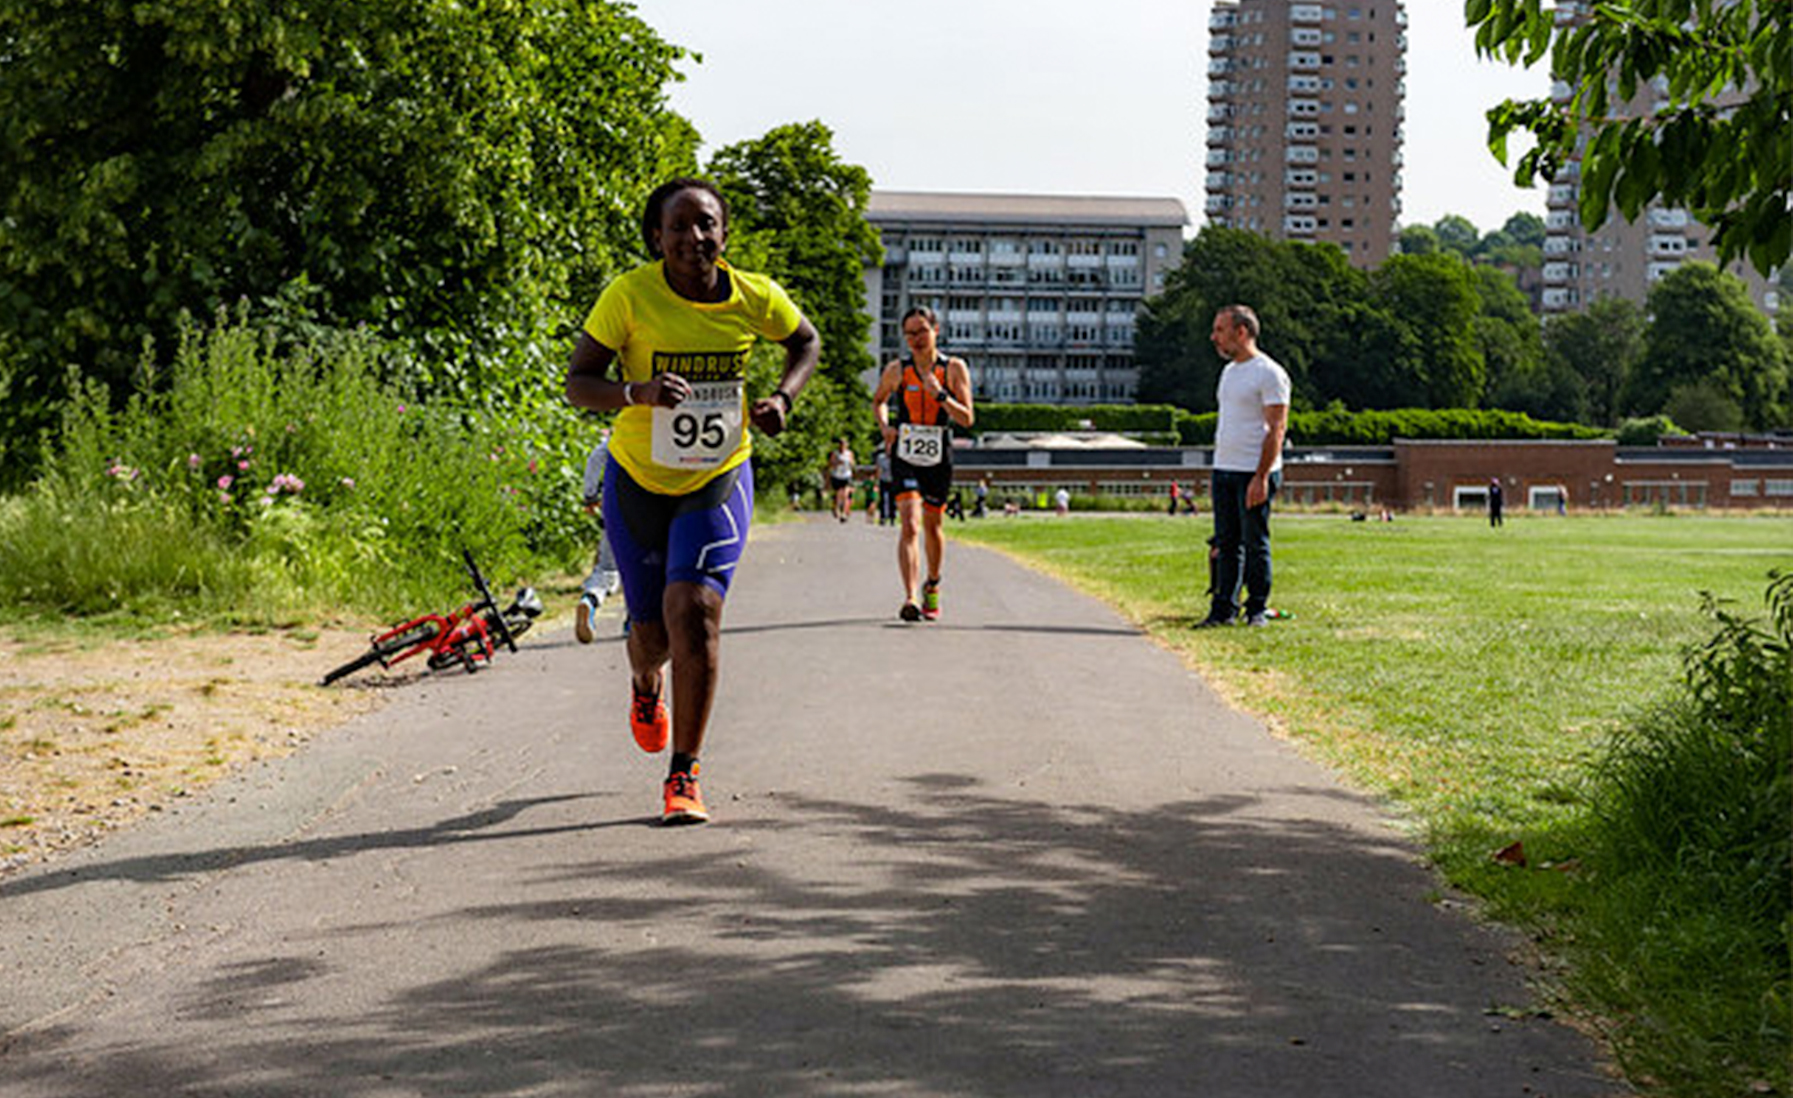 Try something new with TriFit BRIXTON - 5 weeks from your existing fitness level to being race ready